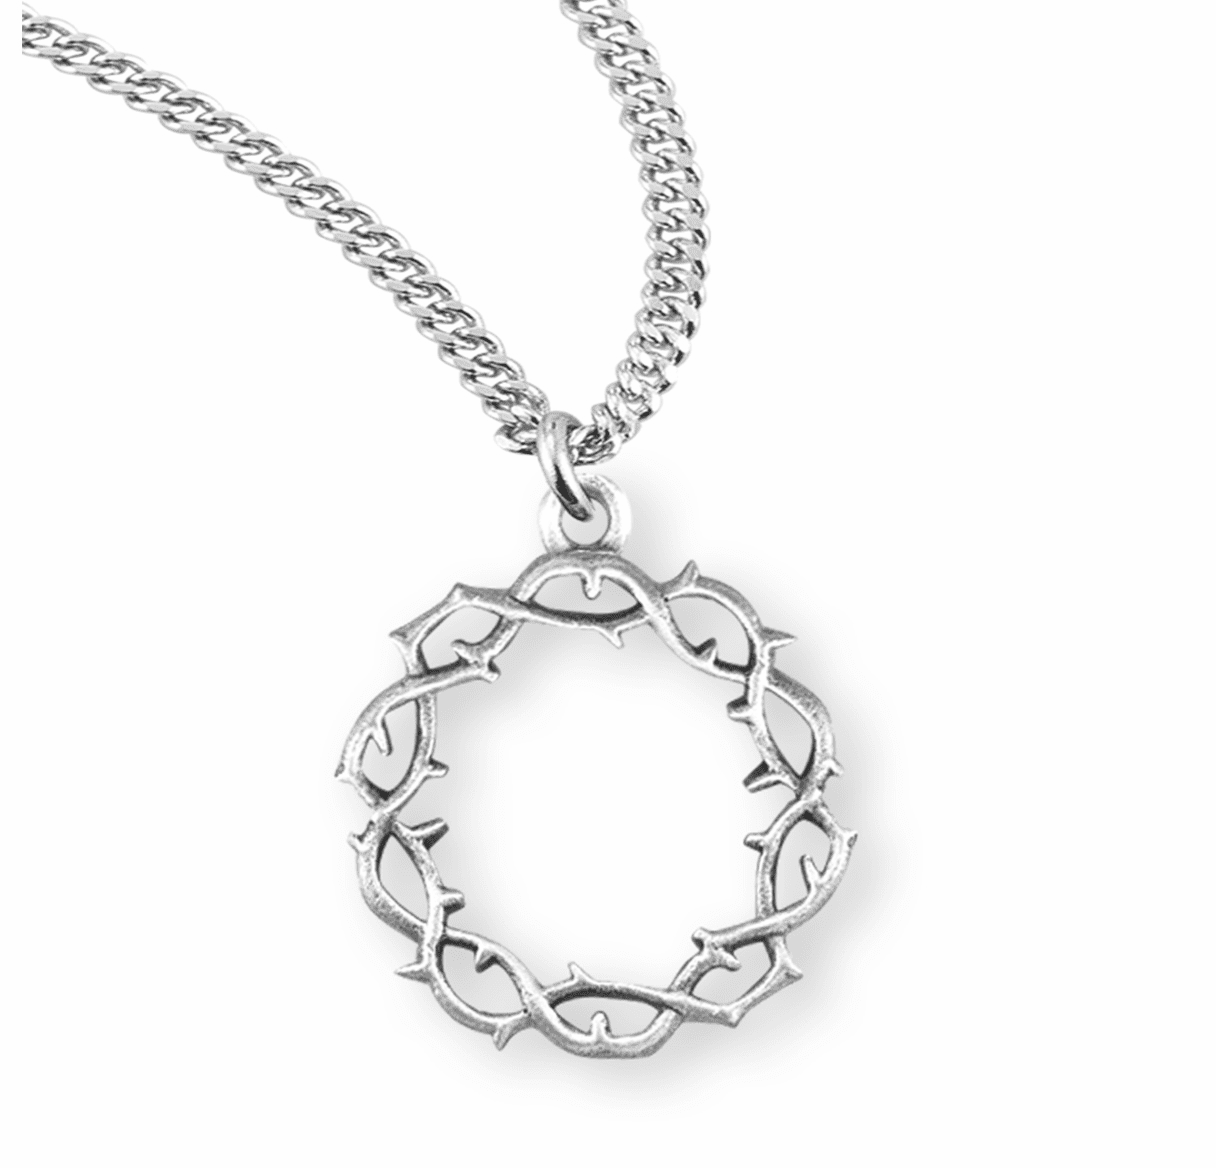 "Crown of Thorns Sterling Silver Pendant with 20"" Chain by HMH Religious"